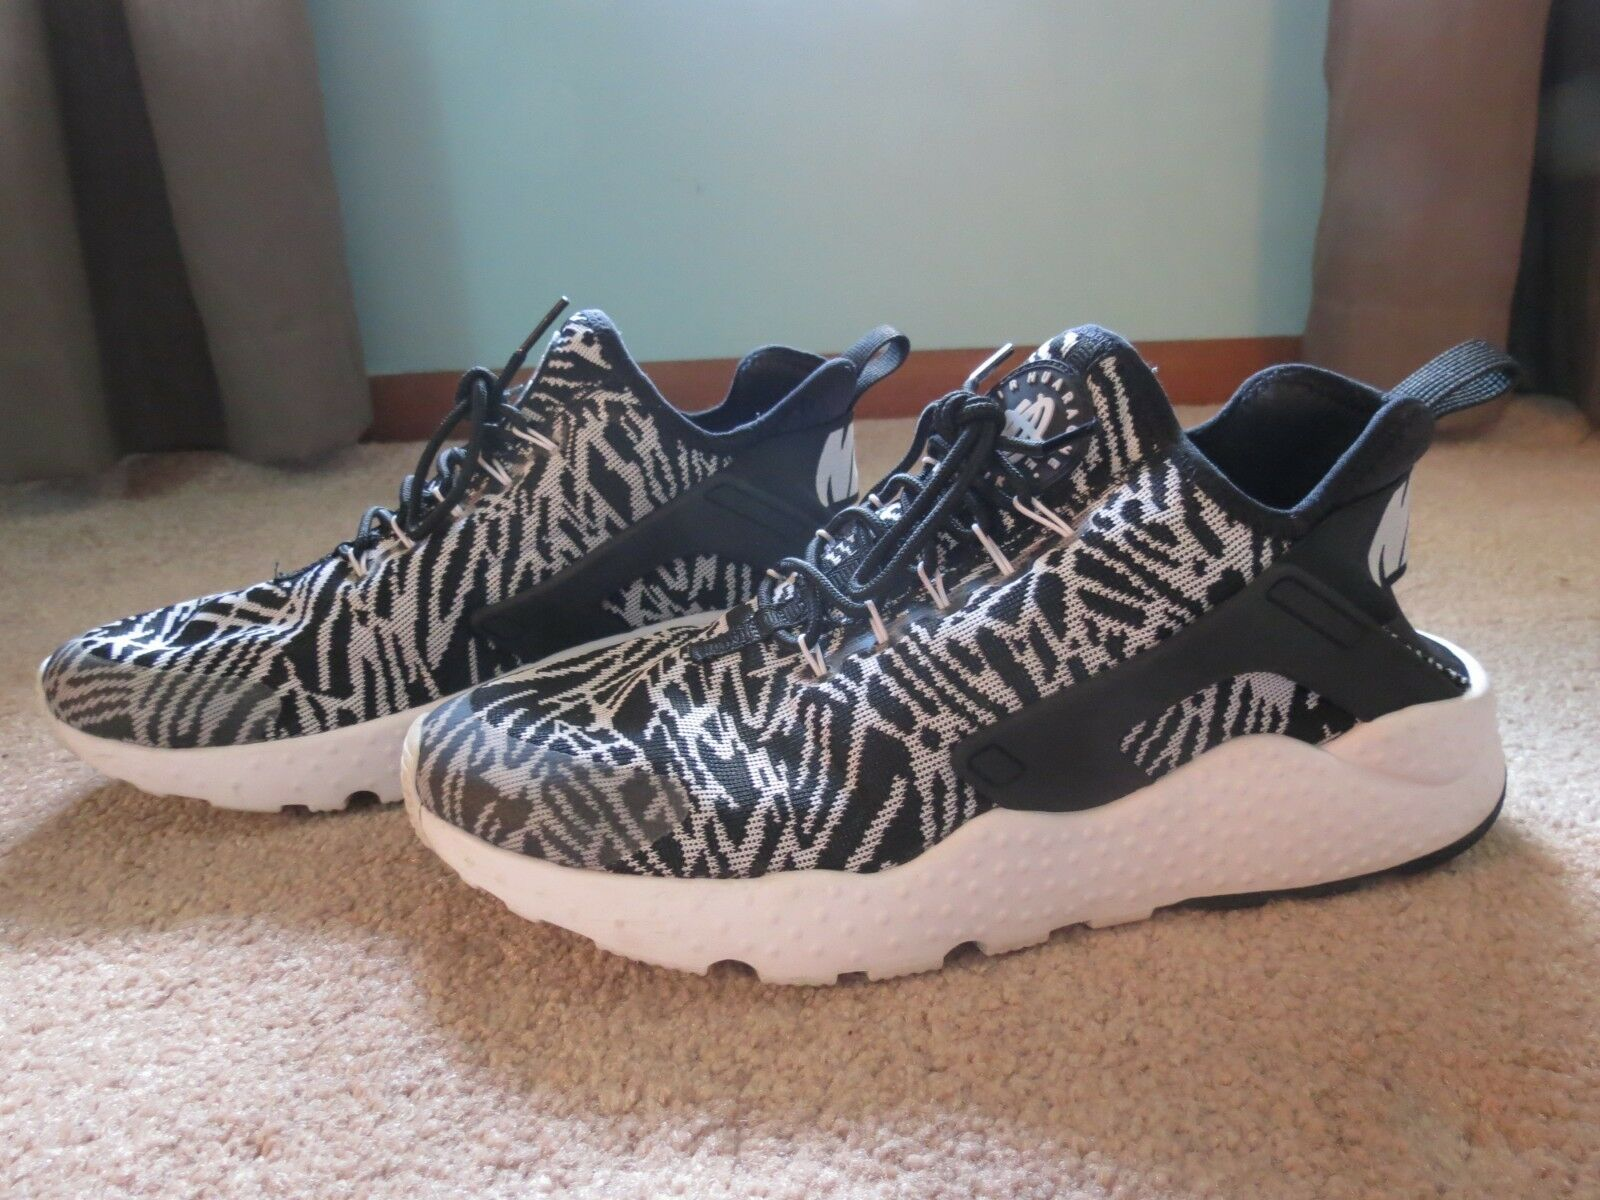 Nike Huarache Black and White Ultra Zebra The latest discount shoes for men and women